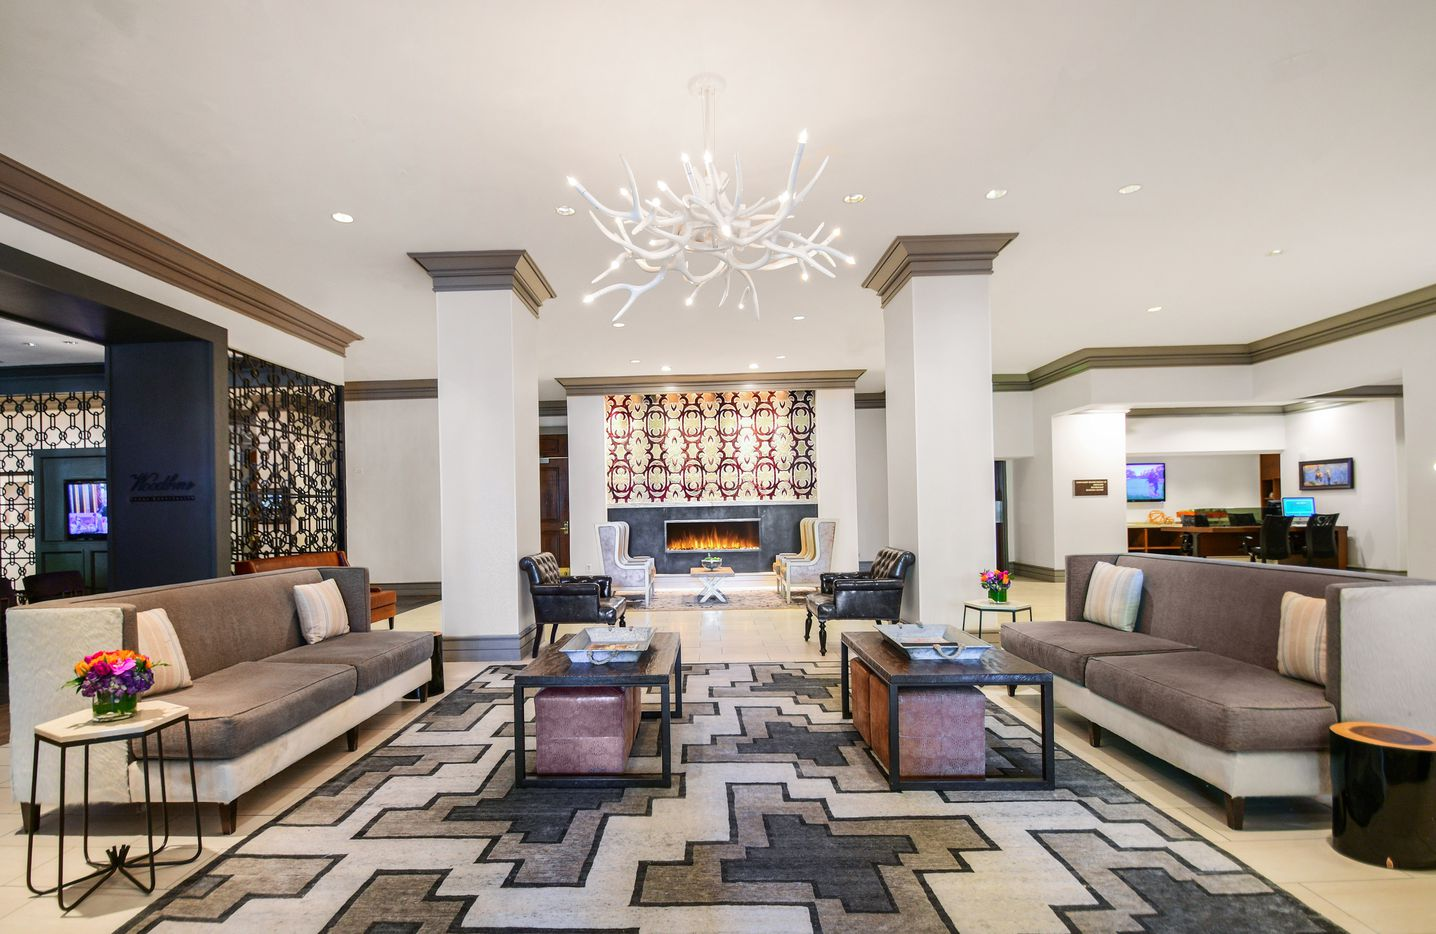 The renovated lobby of the Hilton Dallas/Park Cities hotel.